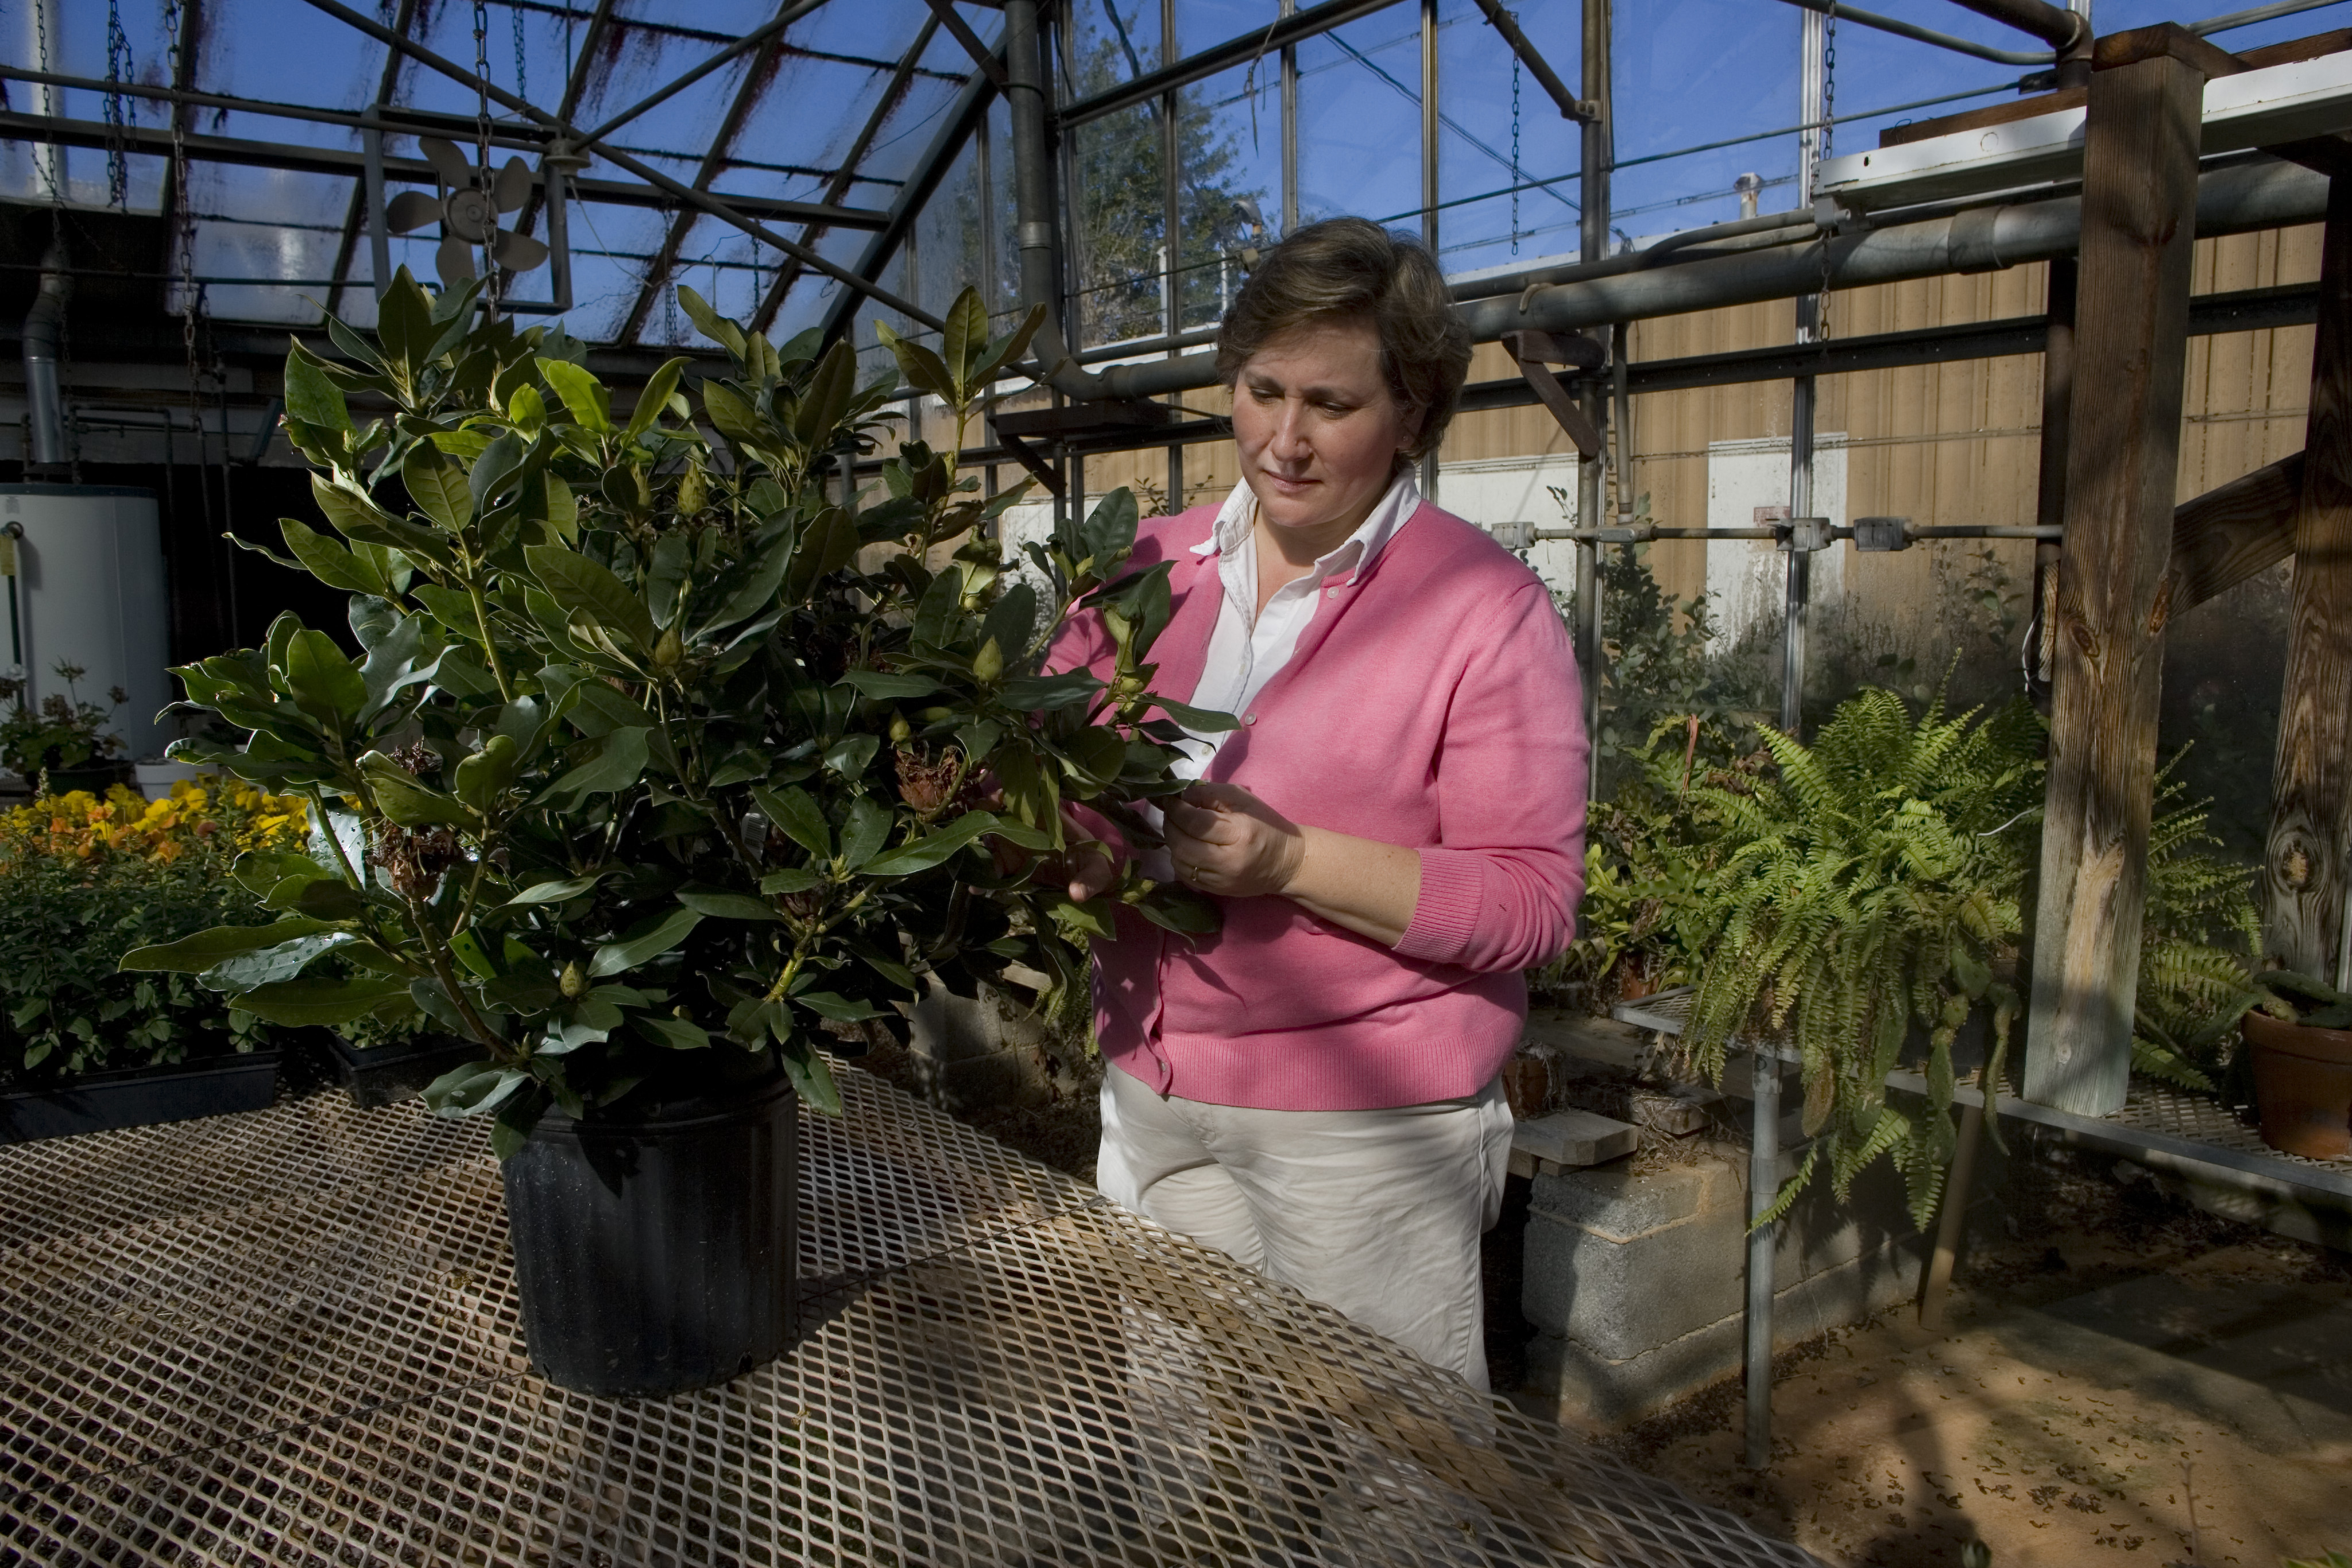 When buying nursery plants, University of Georgia Cooperative Extension experts say check plants carefully to make sure you don't bring home insects, diseases or weeds.